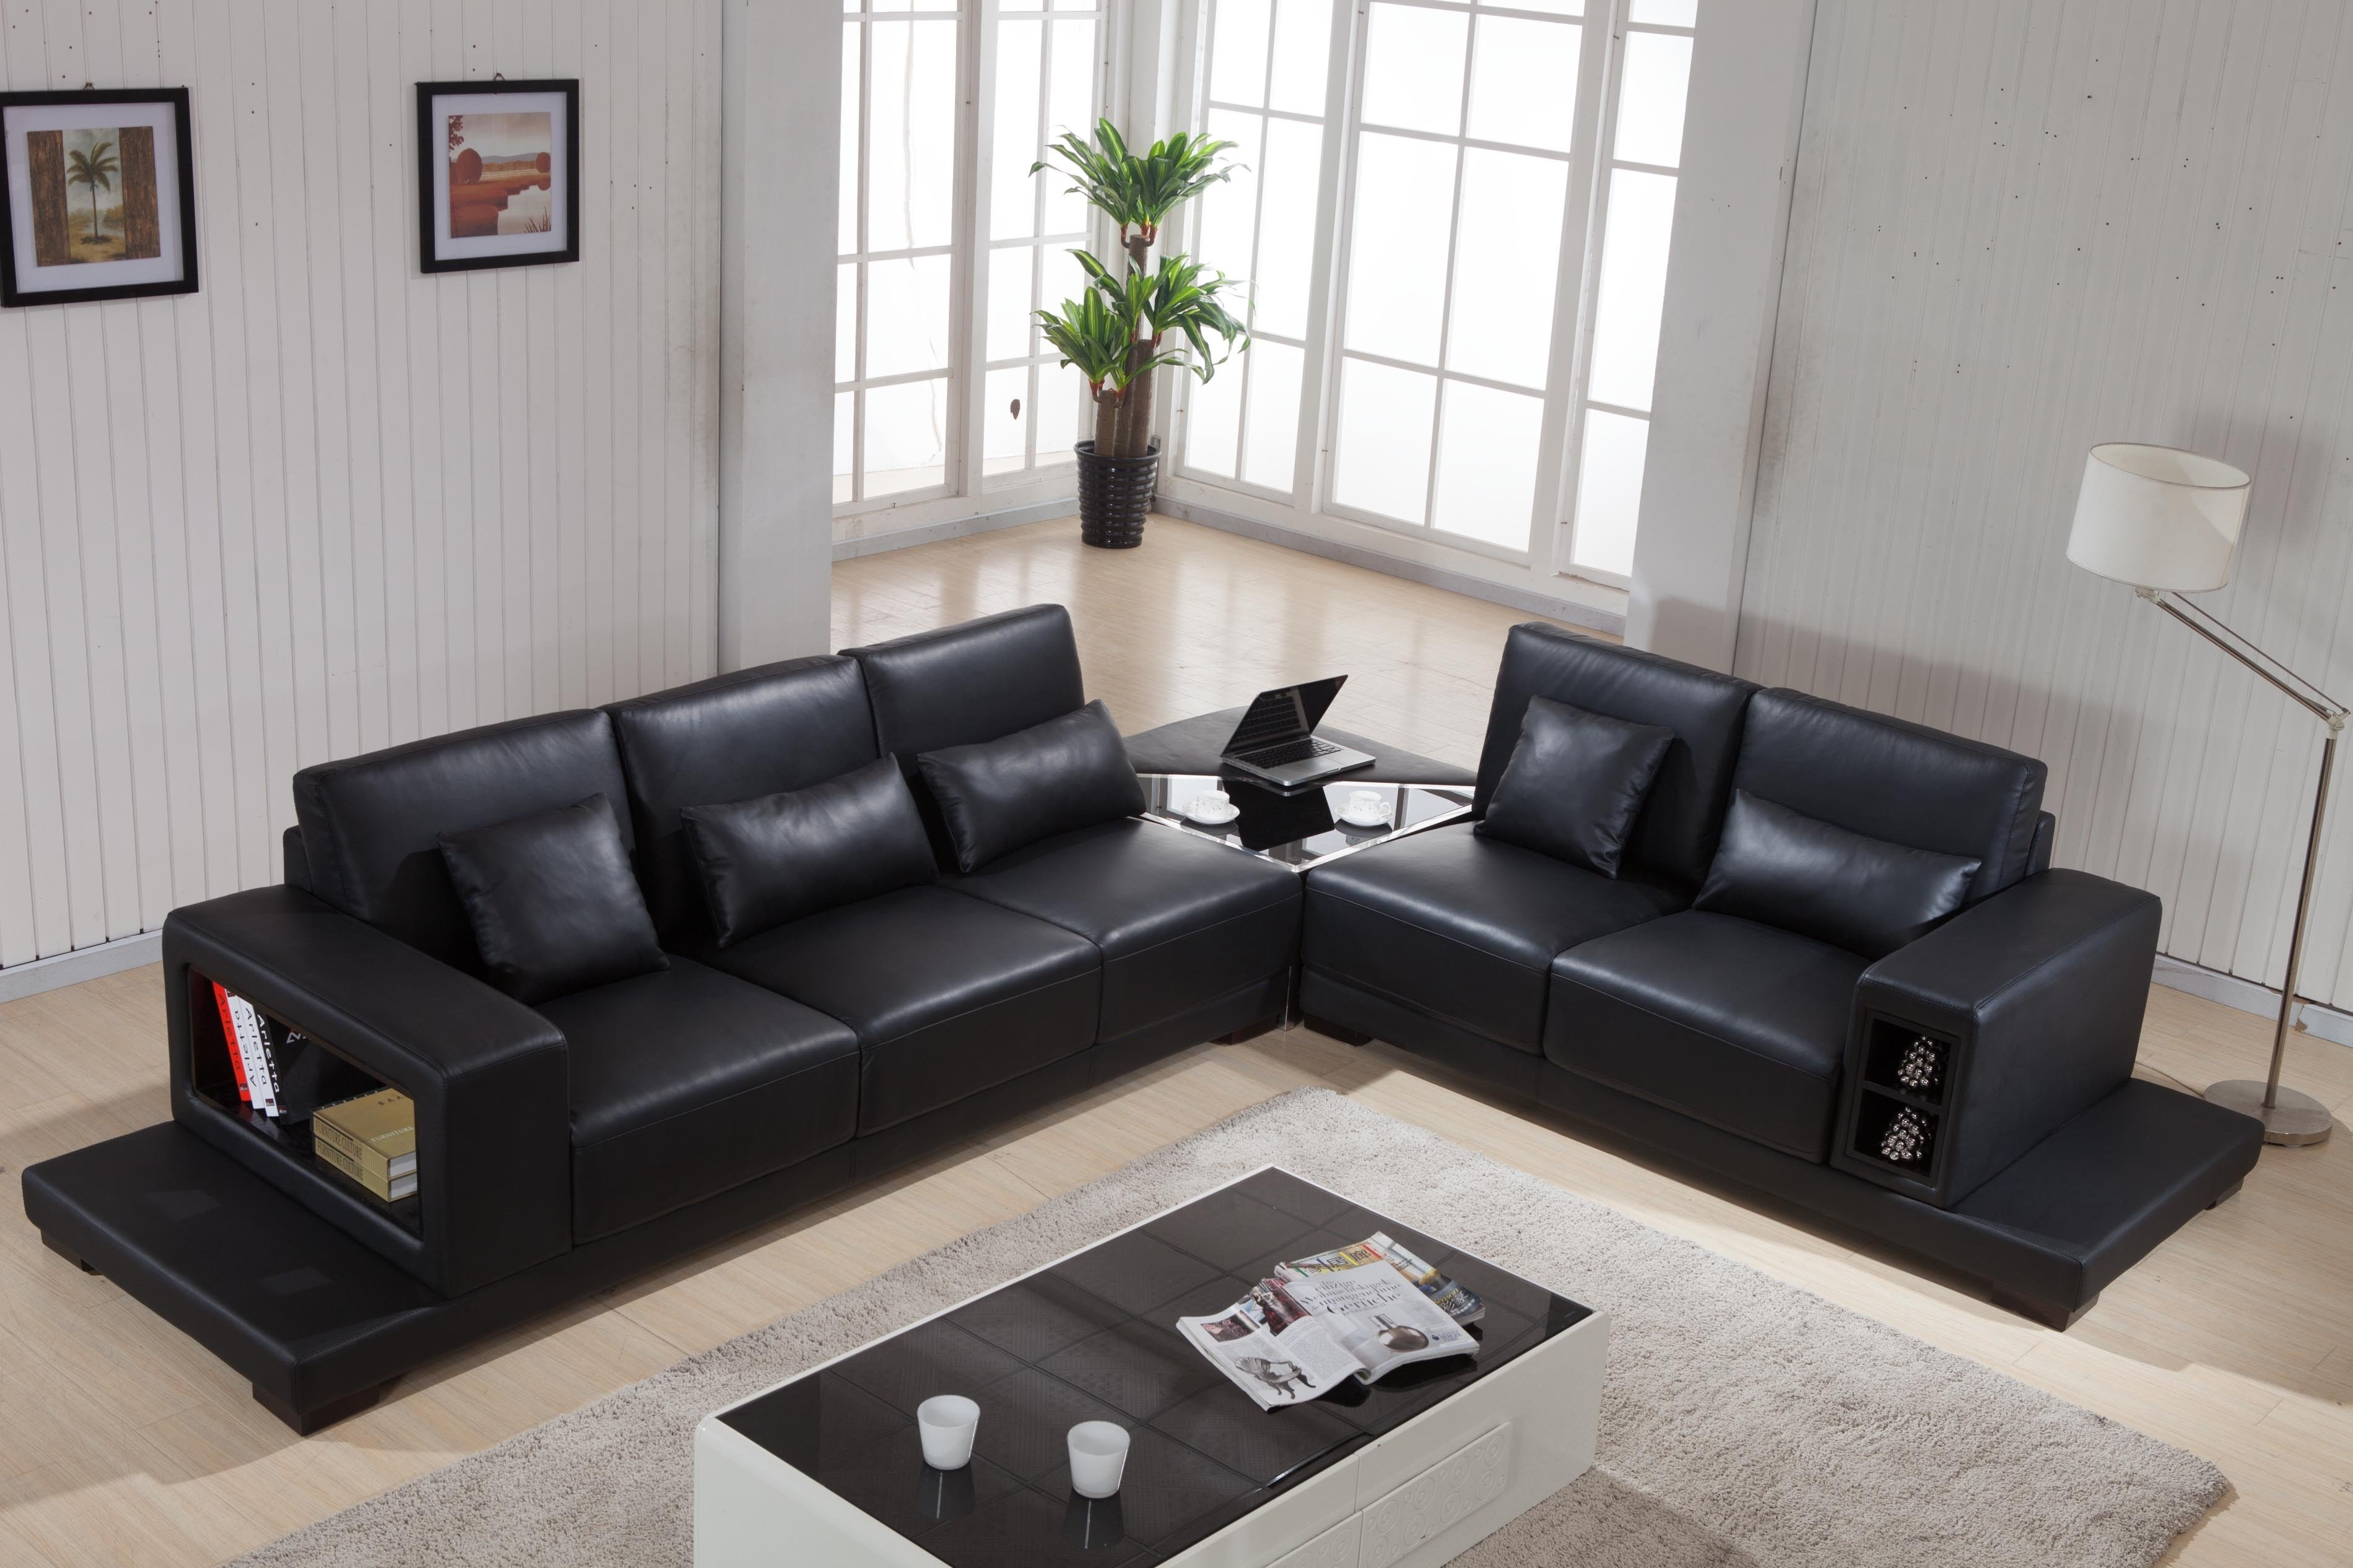 10 Awesome Leather Couch Living Room Ideas leather sofa living room furniture ideas youtube 2020